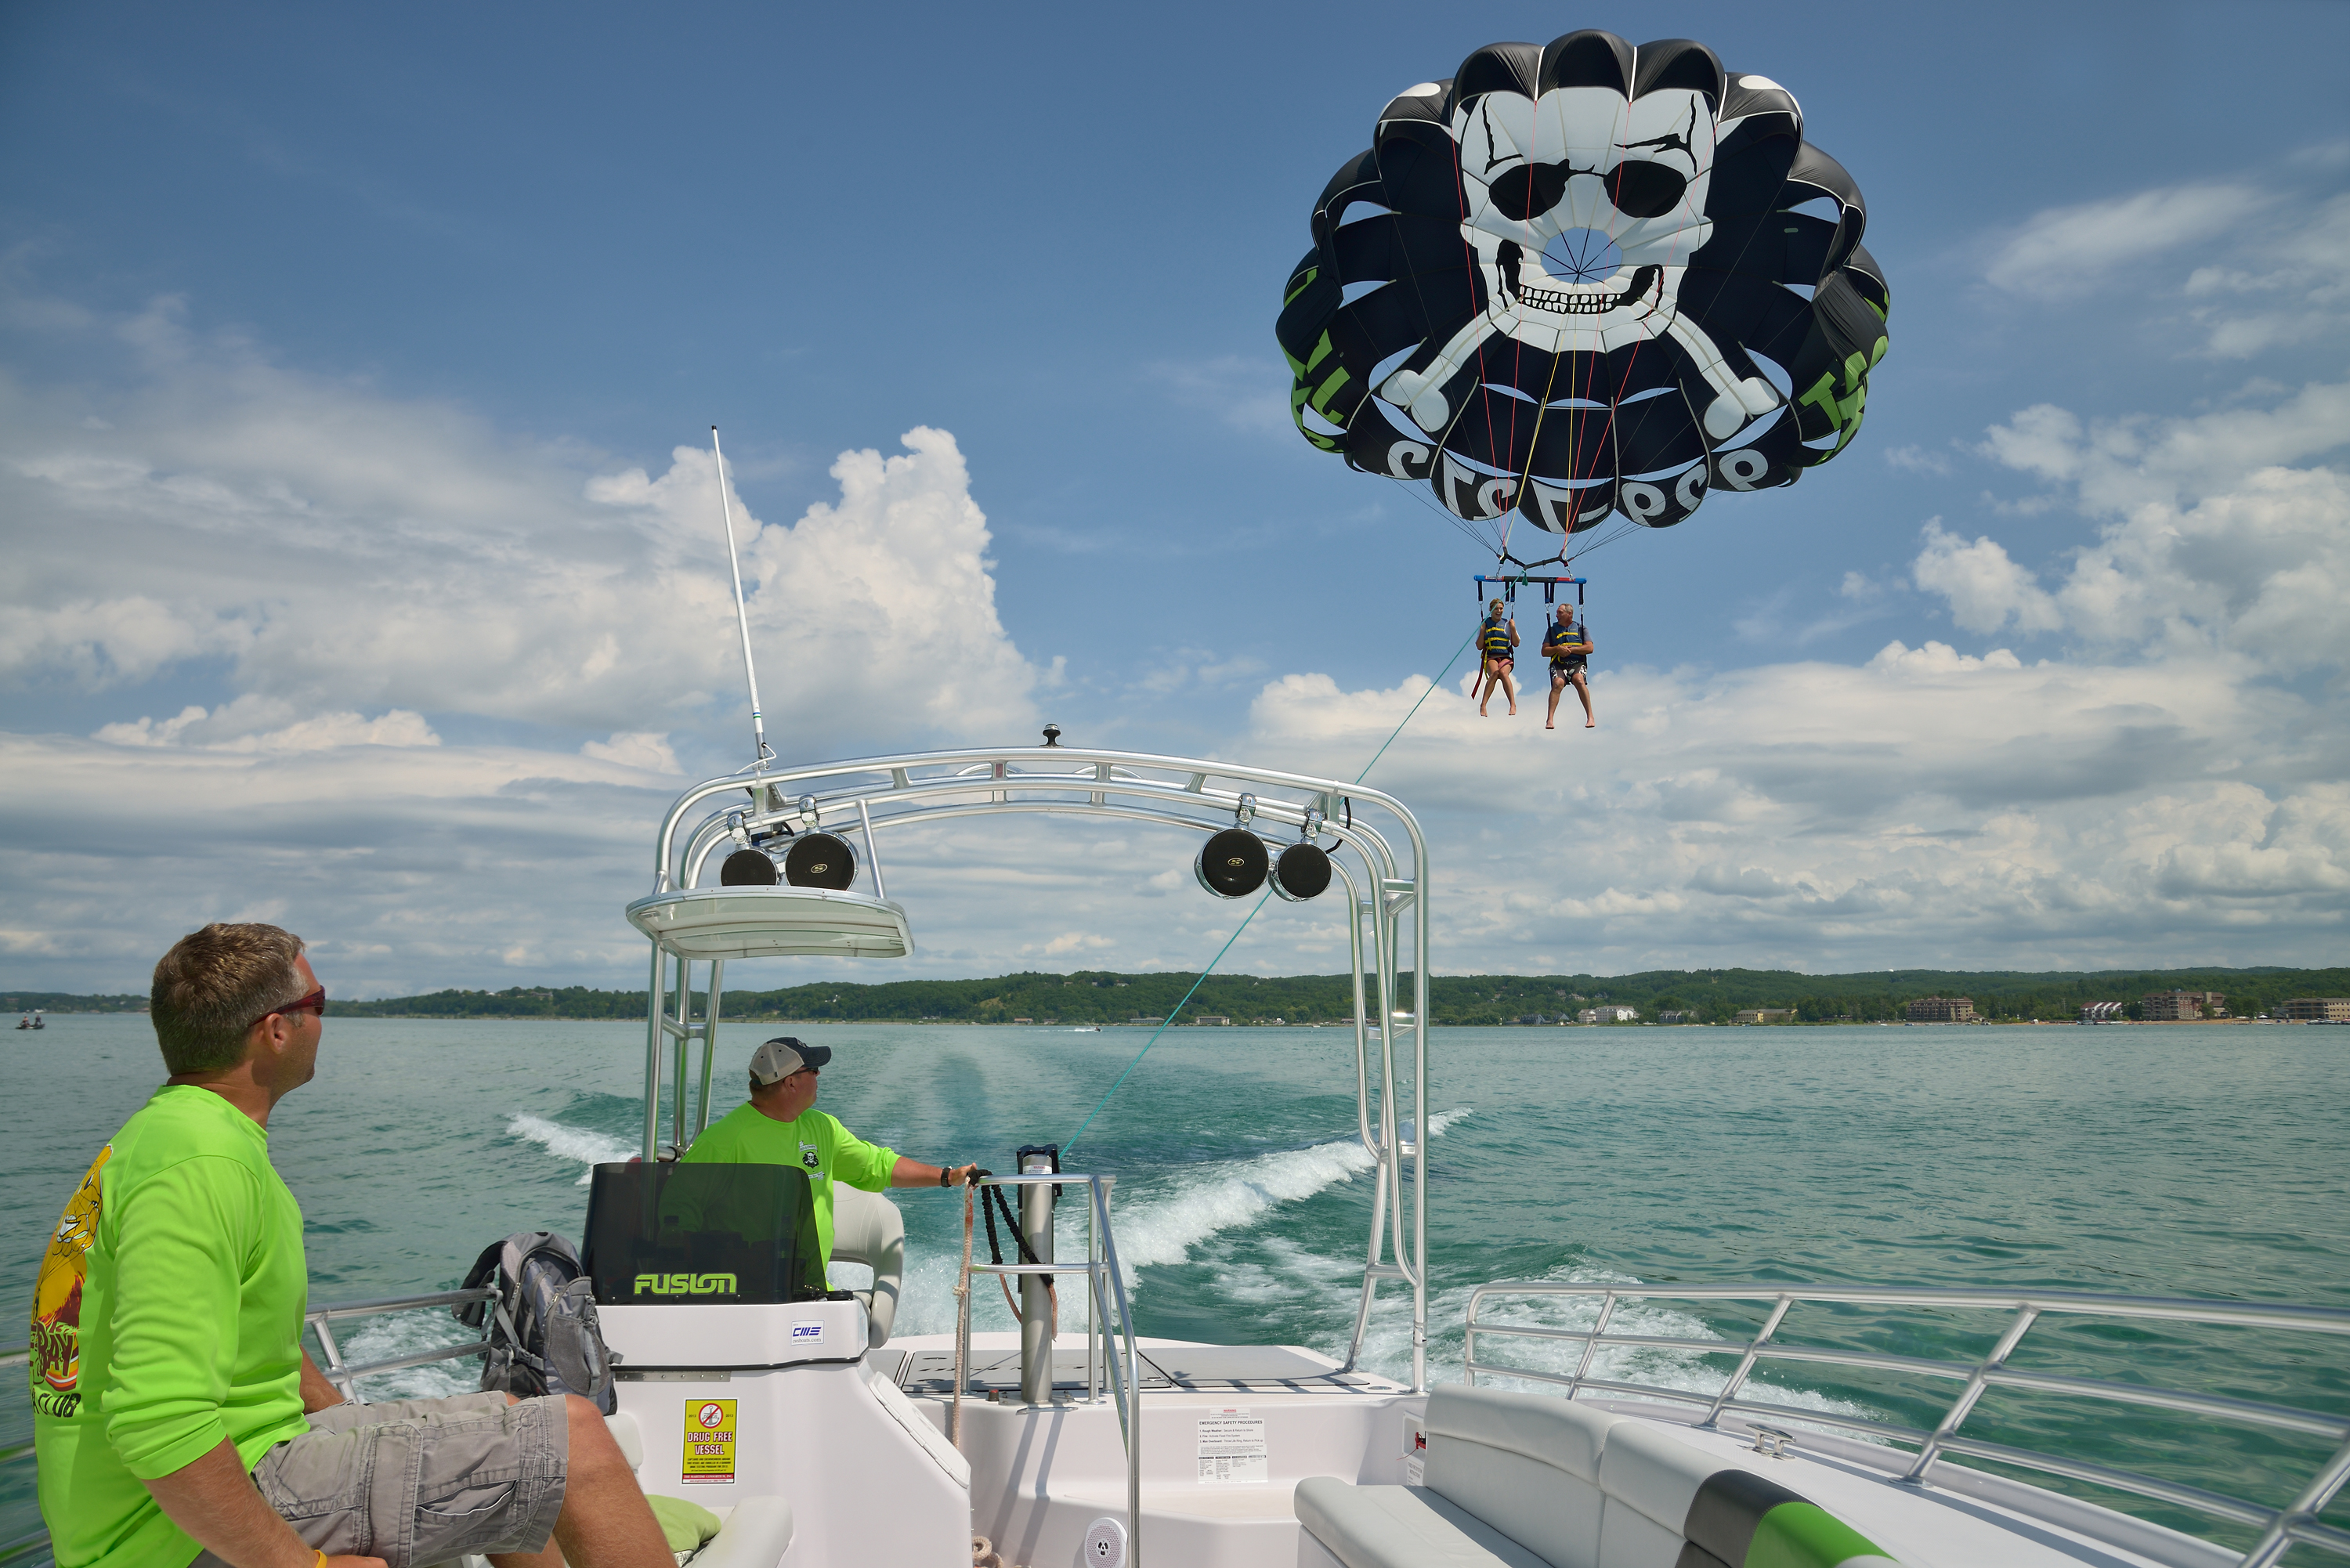 Traverse Bay Parasailing Boat View